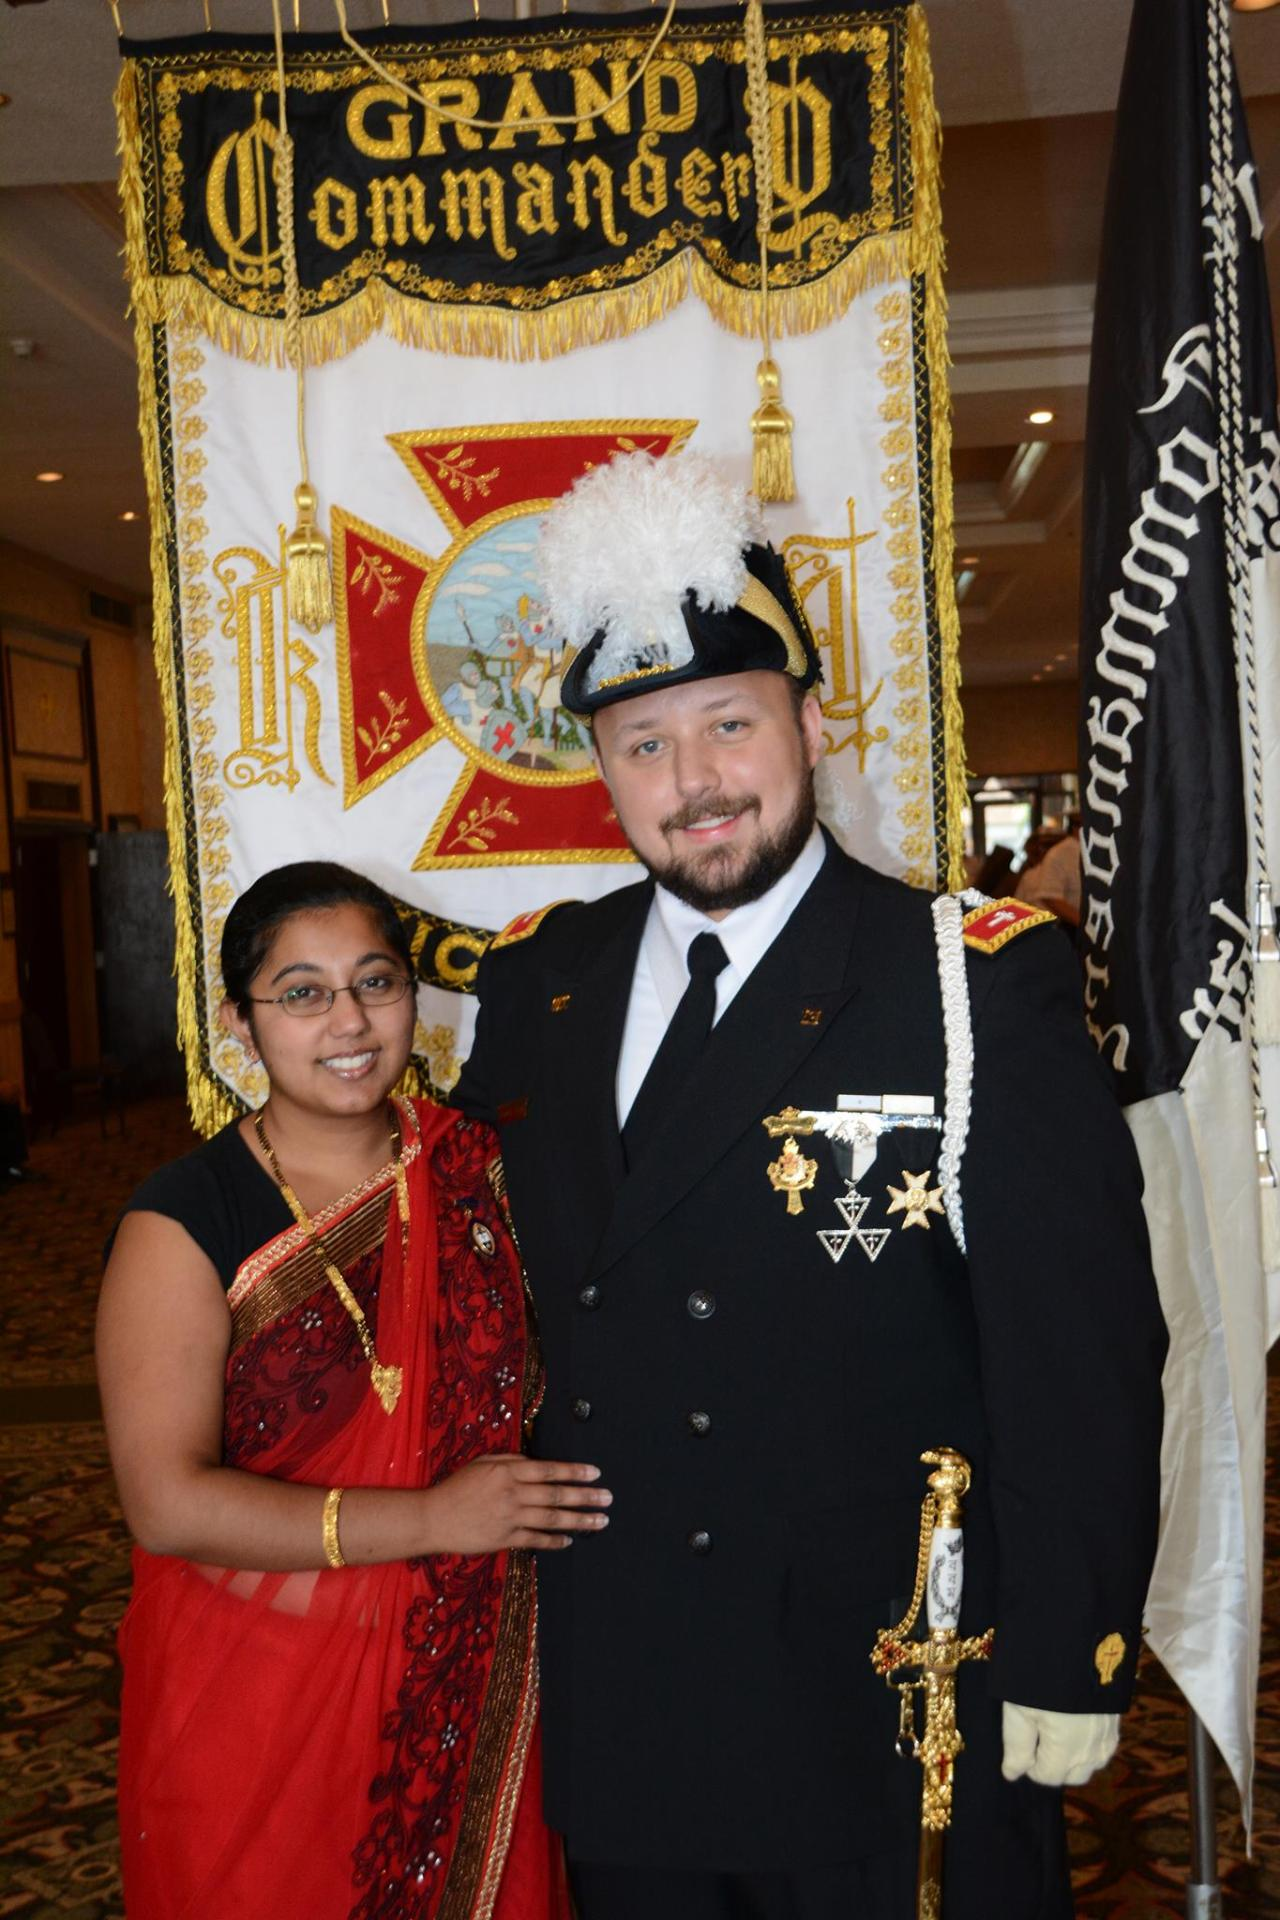 Congratulations to Brandon Mullins, PC for being installed as Southeastern Michigan Battalion Commander after his election to the prestigious post earlier this year. Thanks for your dedicated service to Templary. Companion Brandon, Ann Arbo r Council's Thrice Illustrious Master was also honored with the Grand Master's Service Award and Grand Master's Meritorious award at the Grand Council session, which due to circumstances he was unable to control with his babysitter he was sadly not in attendance to receive these special honors. Thanks for your great efforts in York Rite Masonry Brandon!